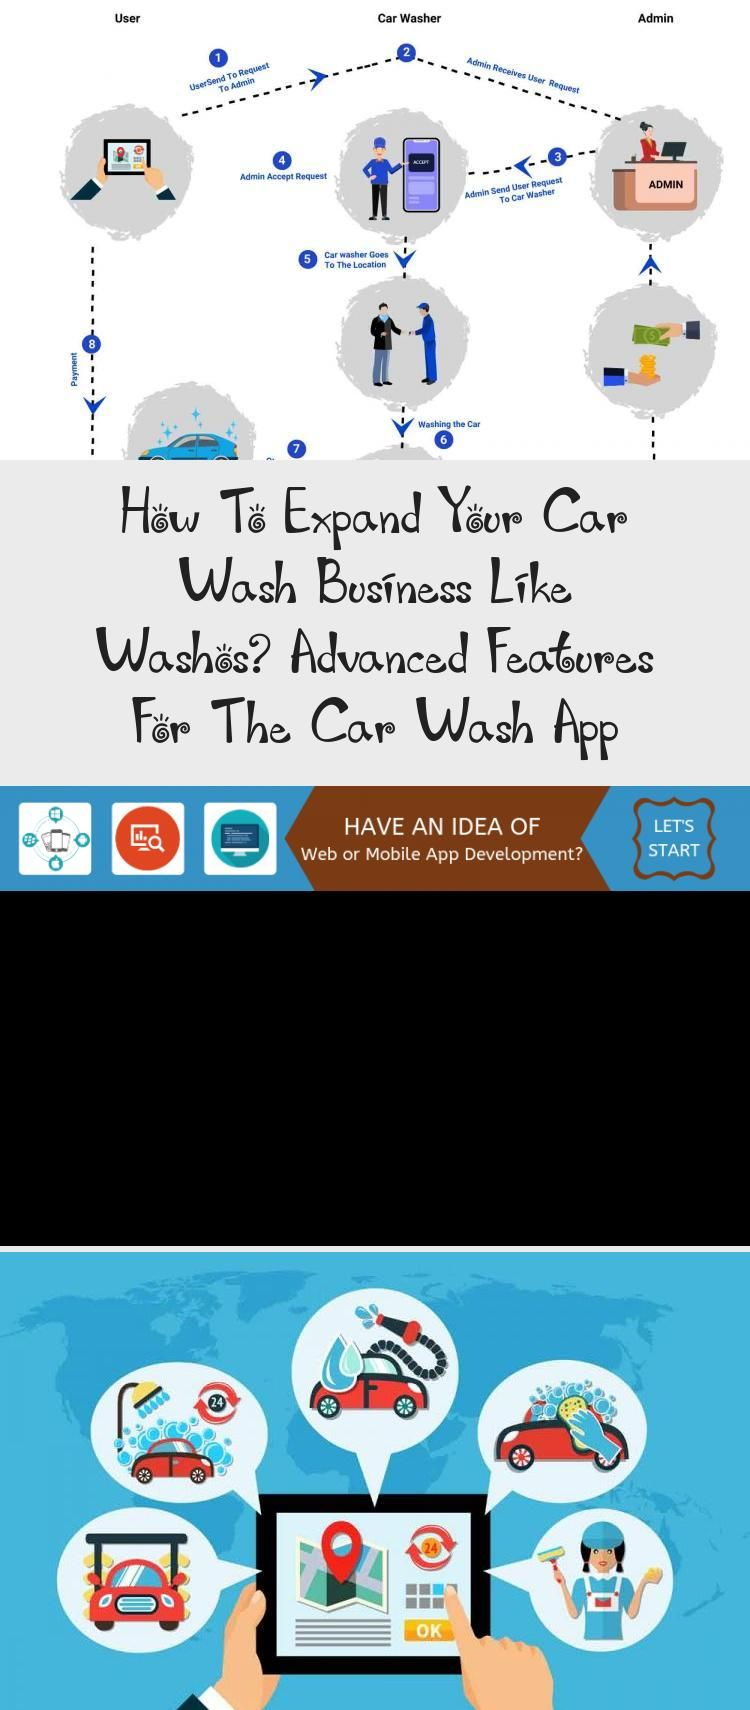 How To Expand Your Car Wash Business Like Washos Advanced Features For The Car Wash App Technology Car Wash Business Car Wash App Technology